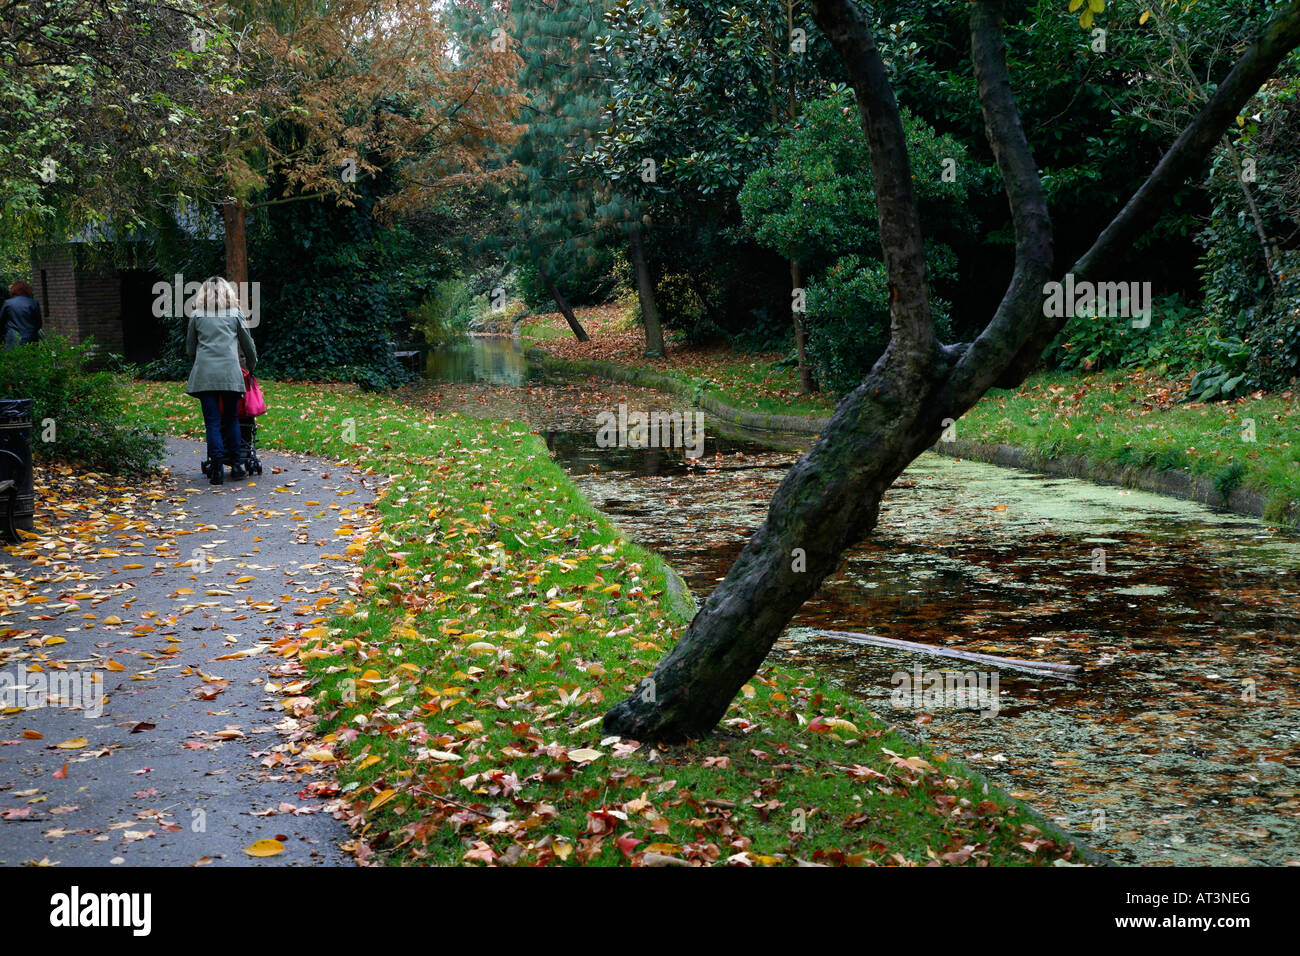 New River in Canonbury, London - Stock Image